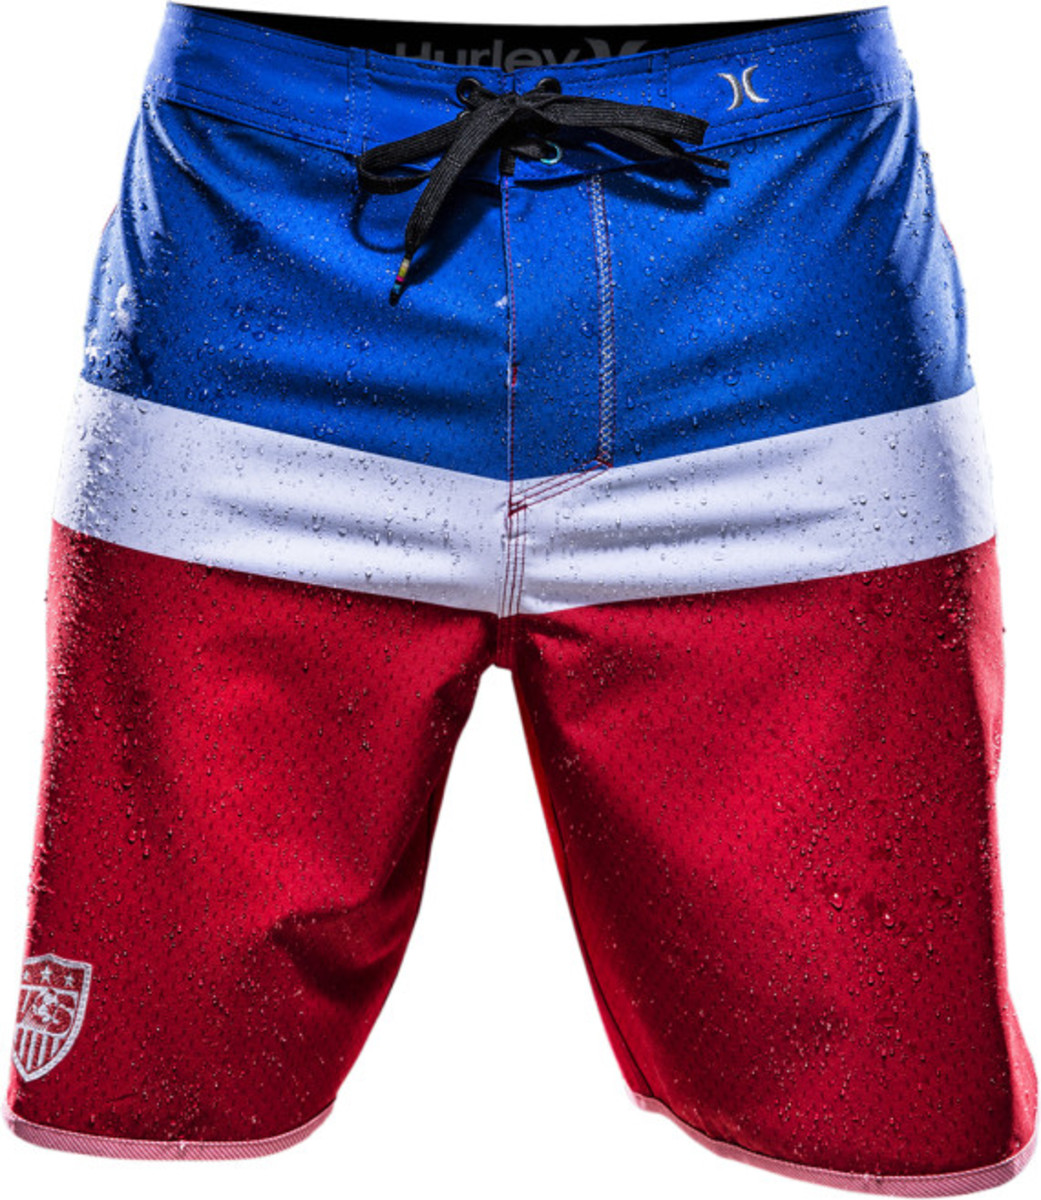 hurley-phantom-national-team-boardshorts-12